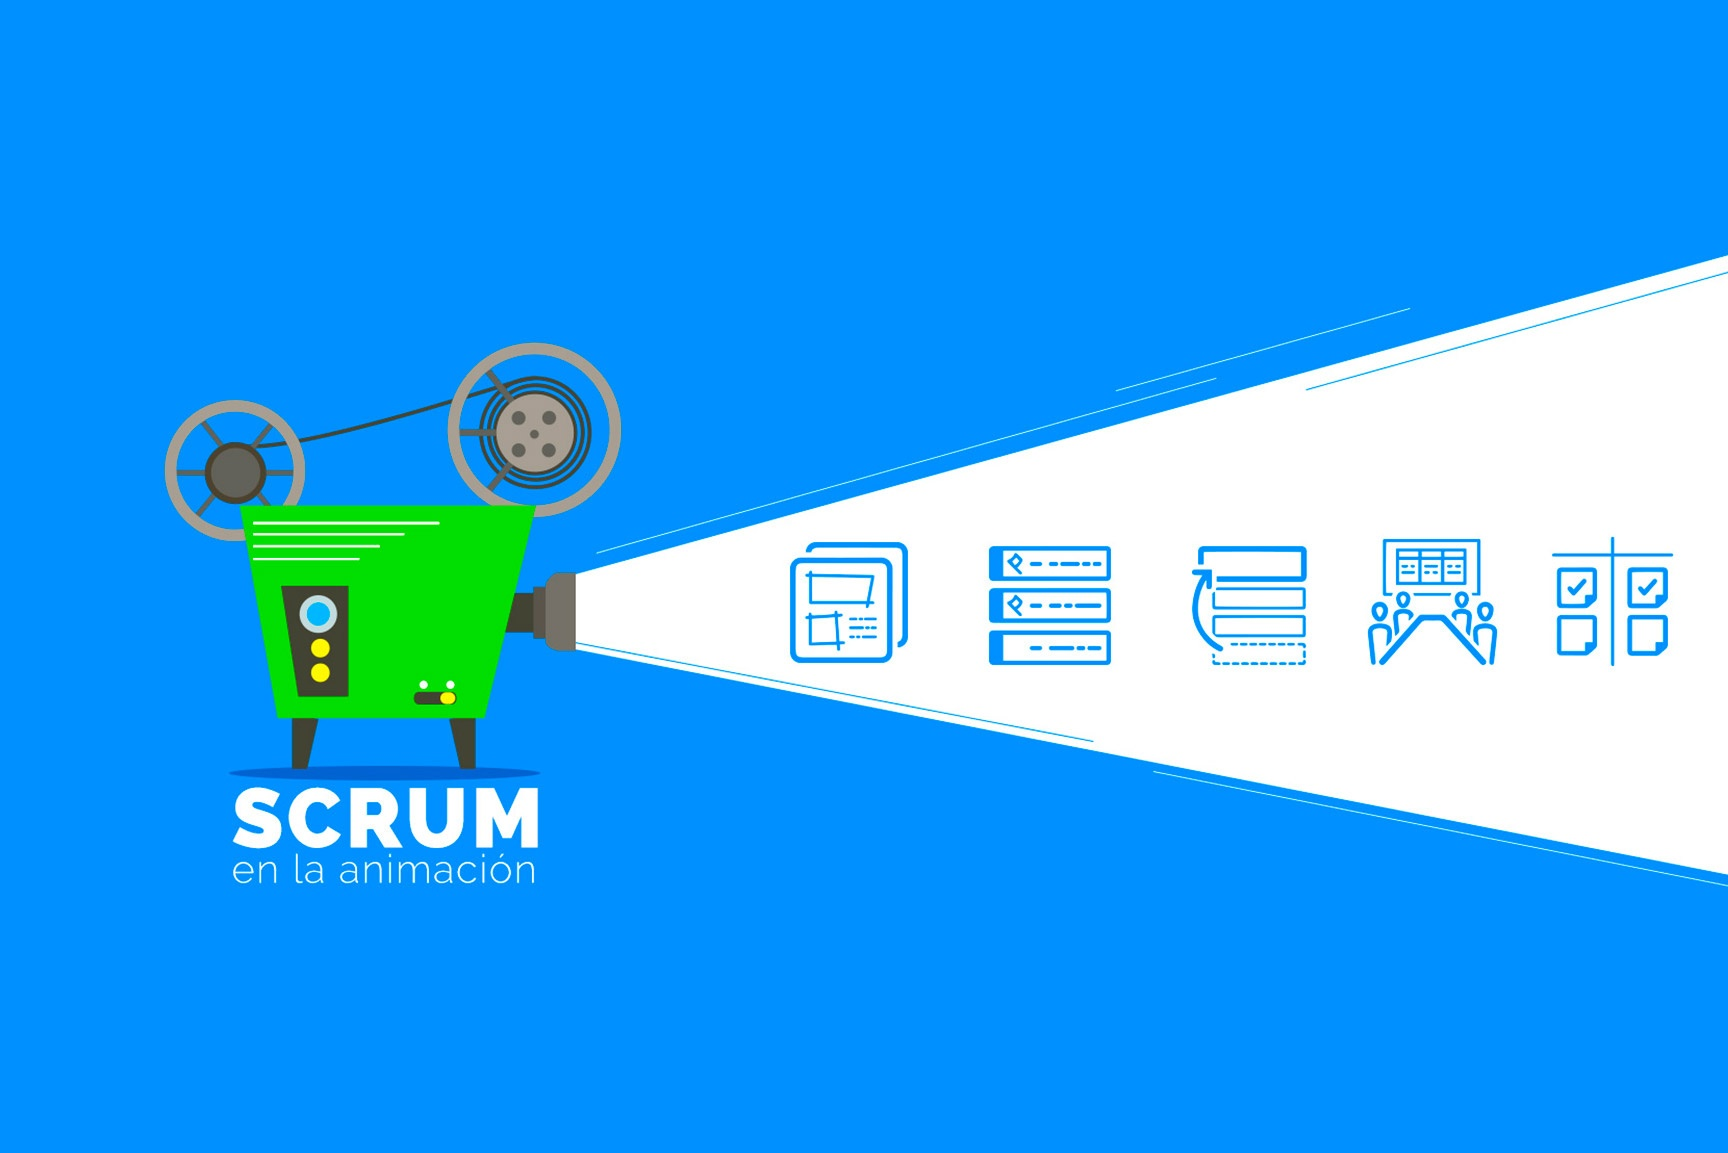 h_uso_de_scrum_en_la_produccion_de_animacion_digital_y_la_posproduccion_de_video.jpg